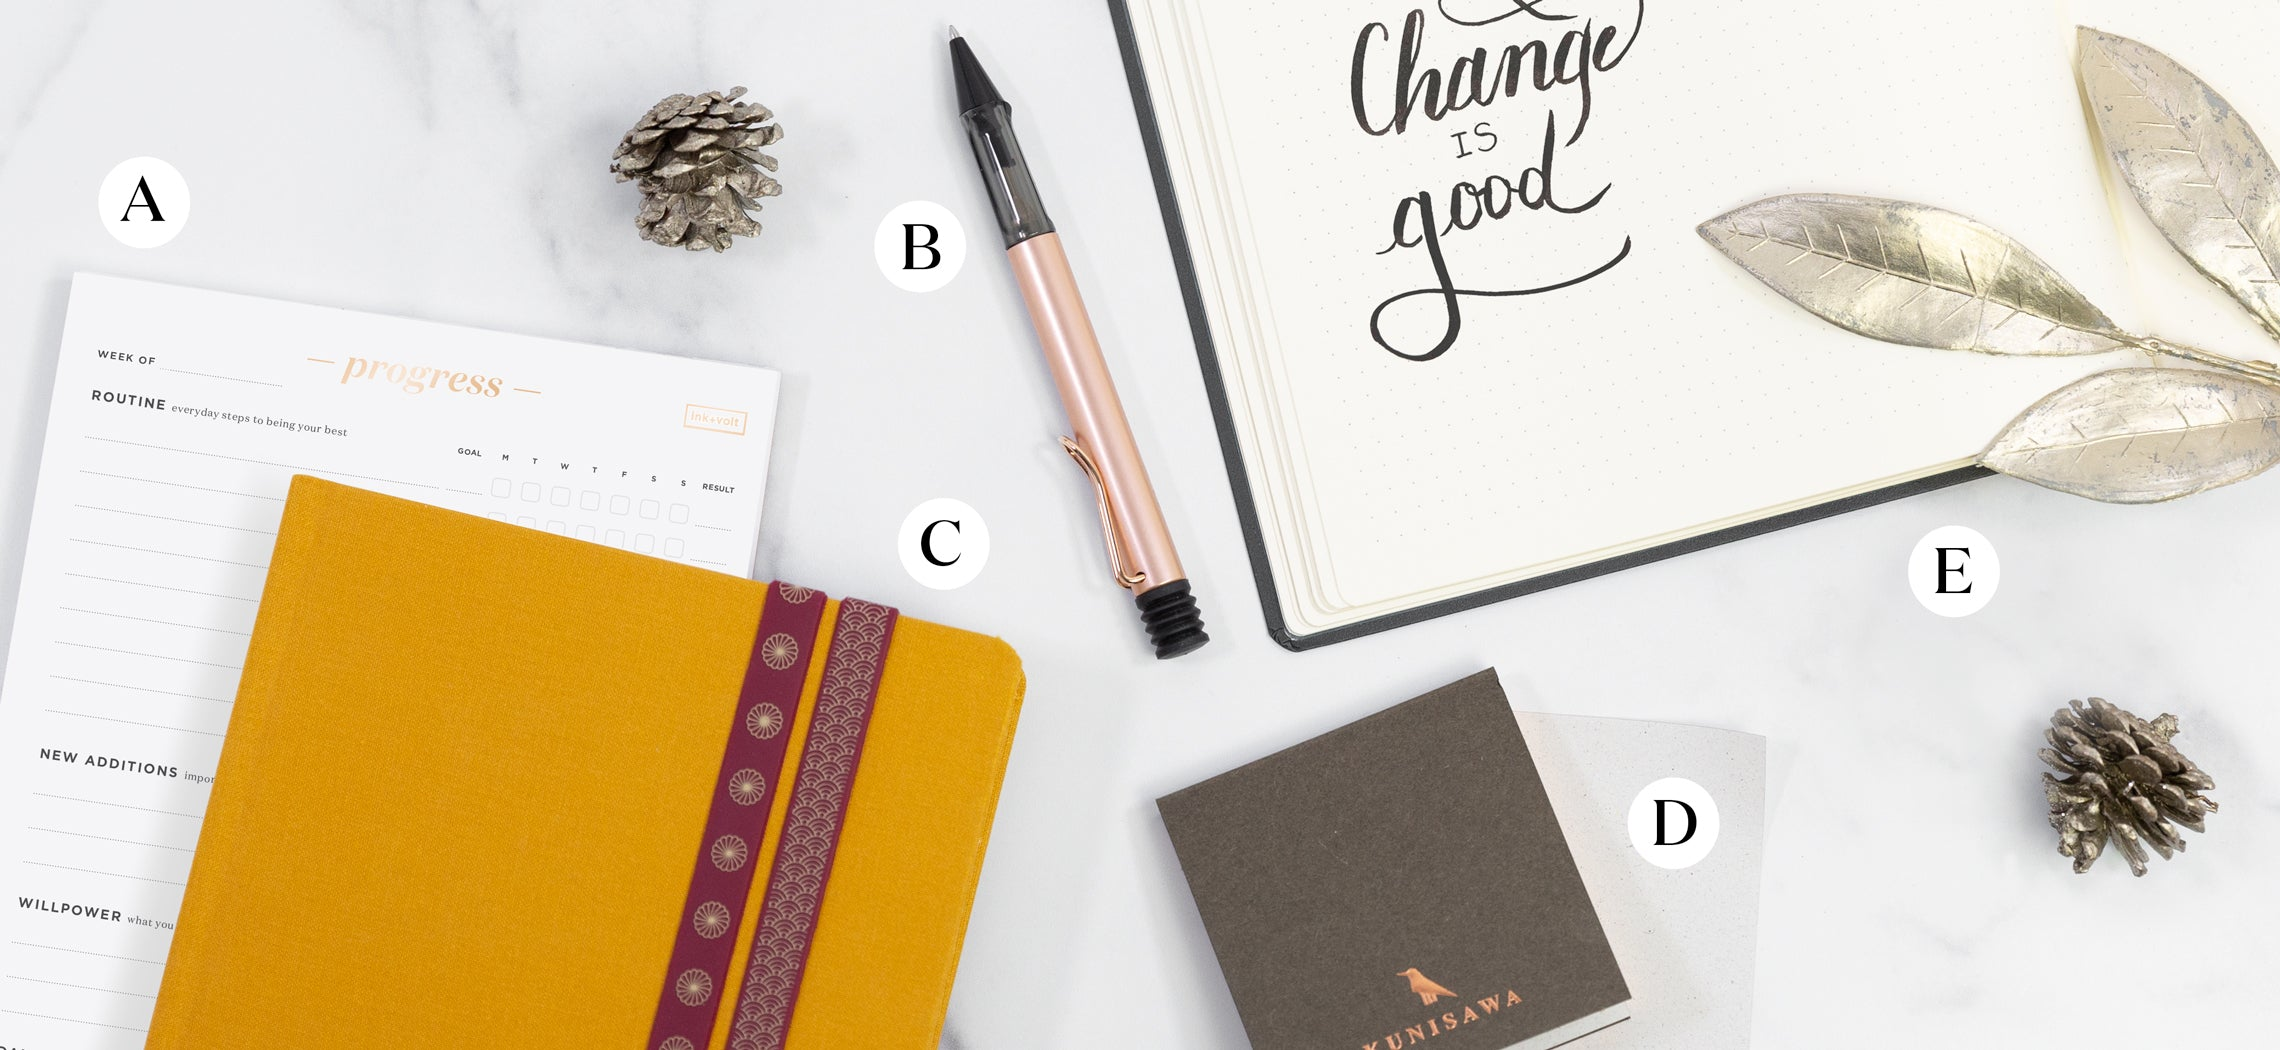 productivity and stationery products